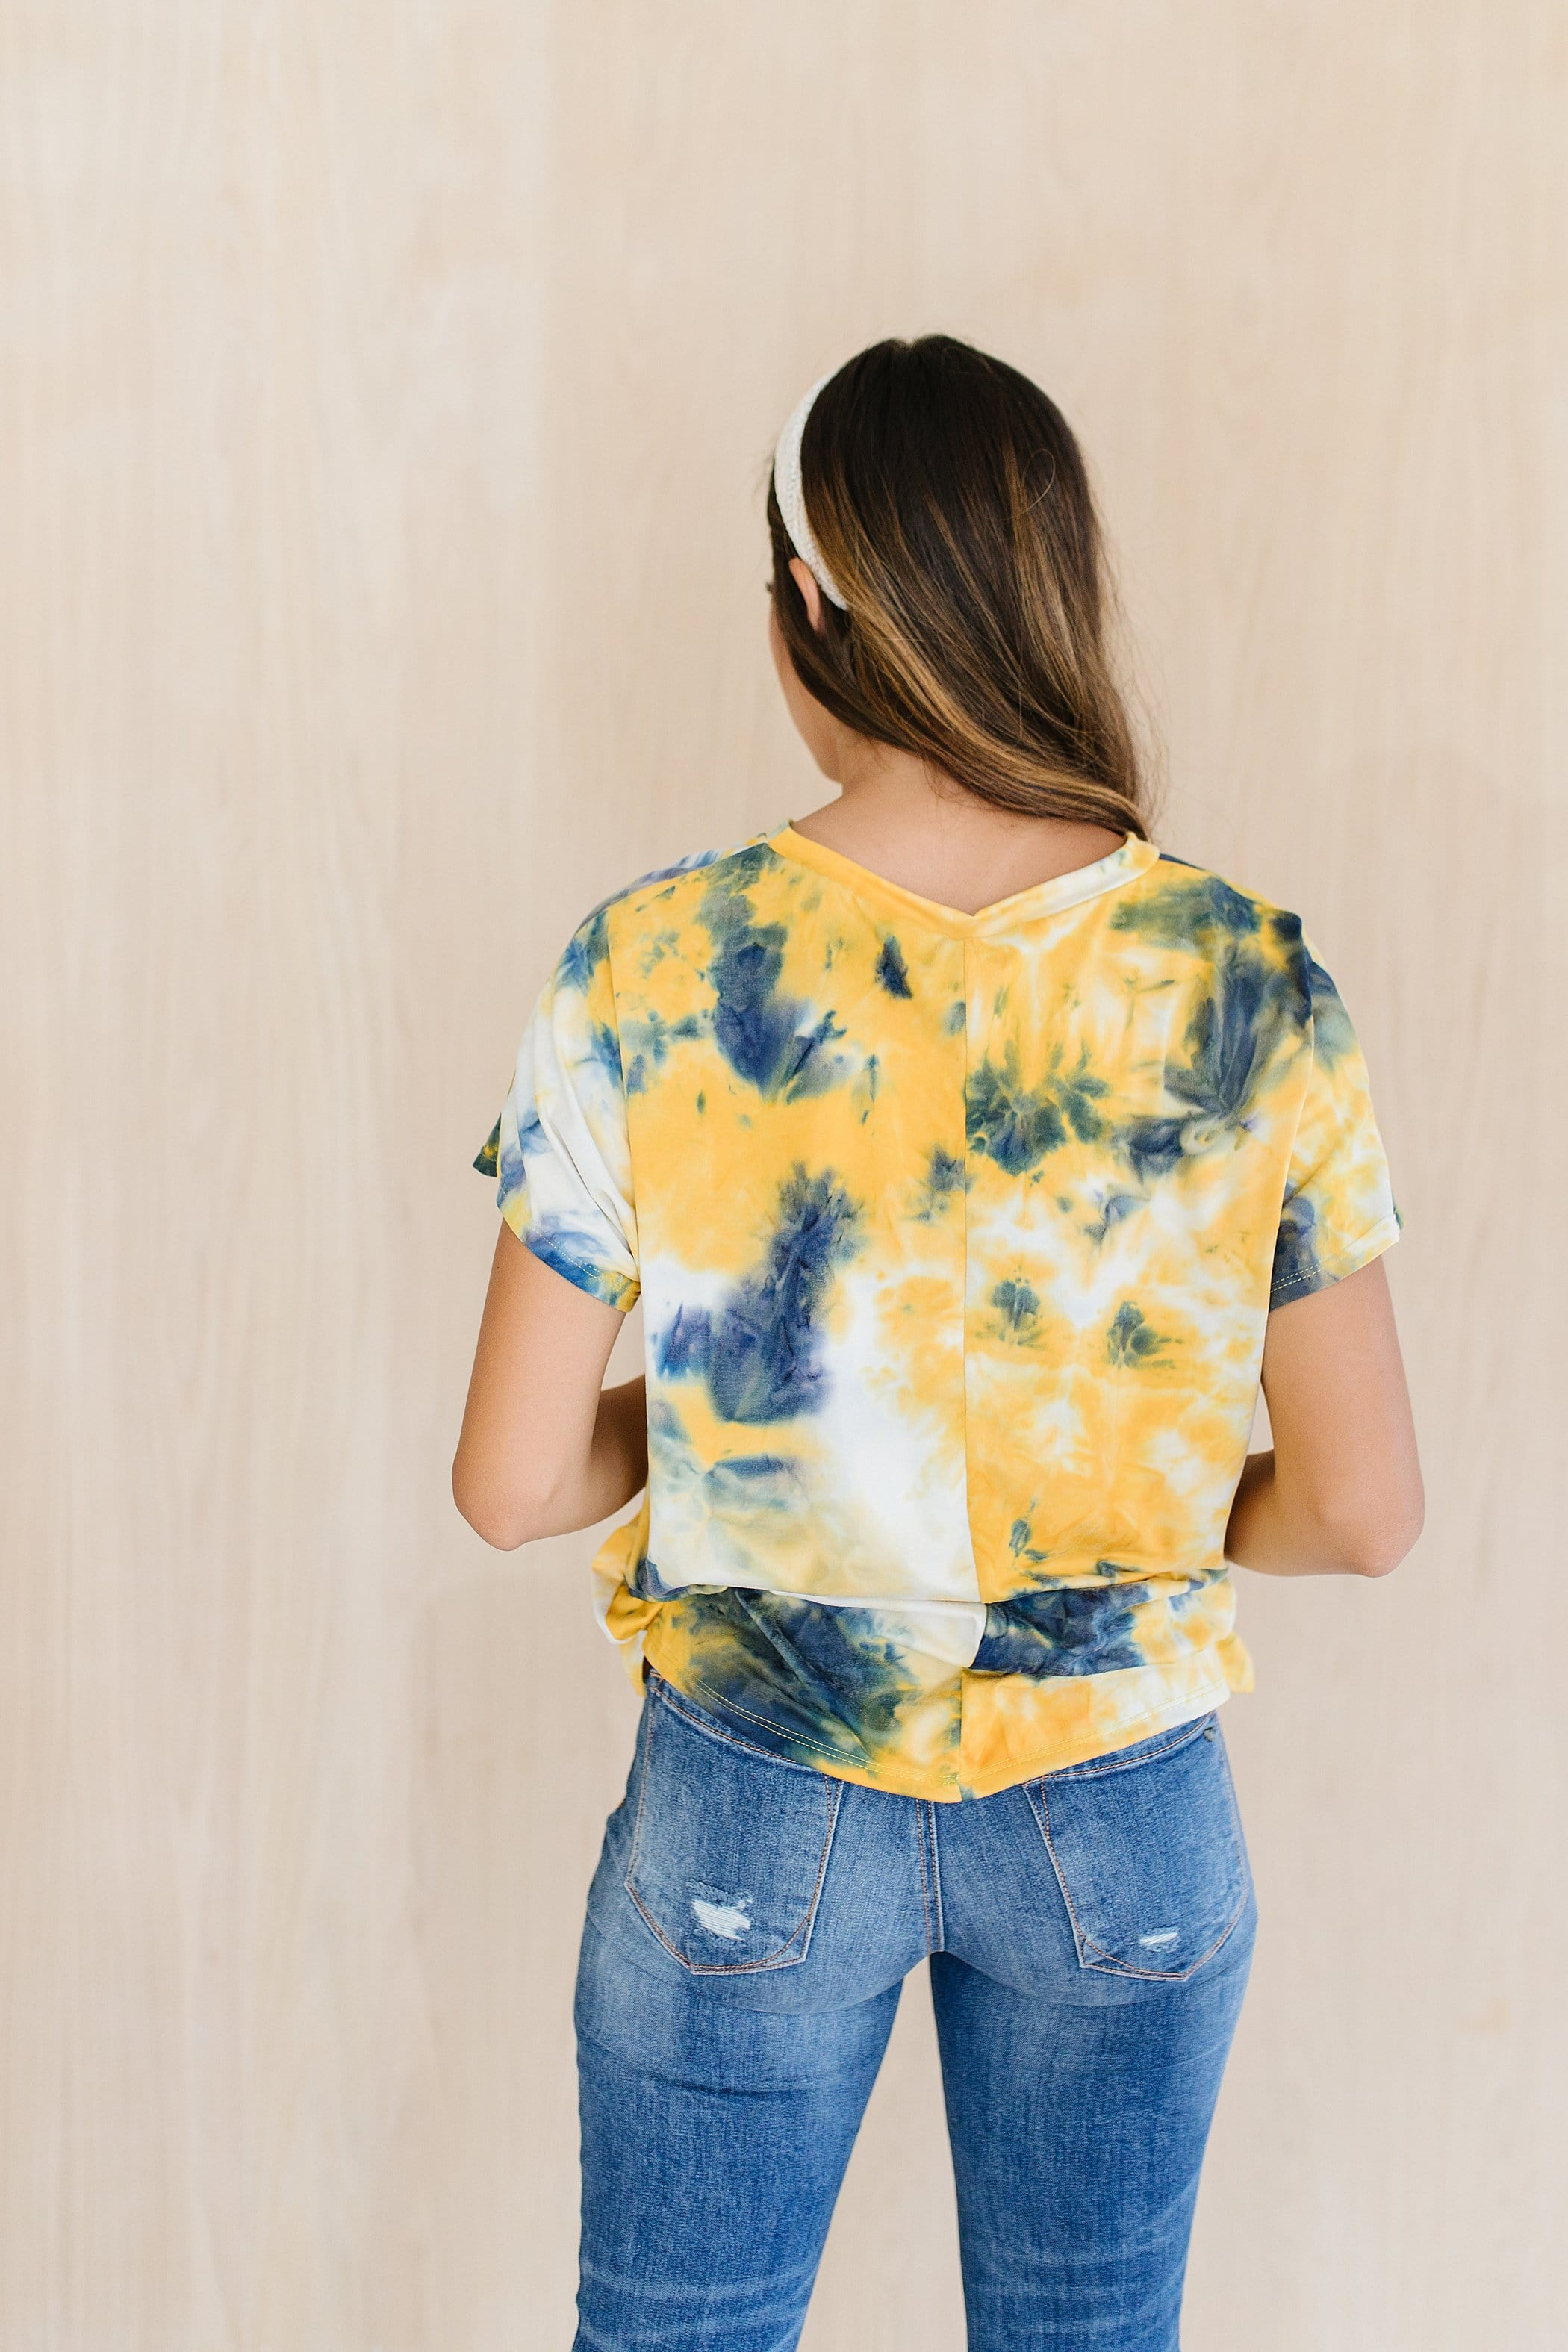 The Sabrina Tie Dye Top in Black or Yellow